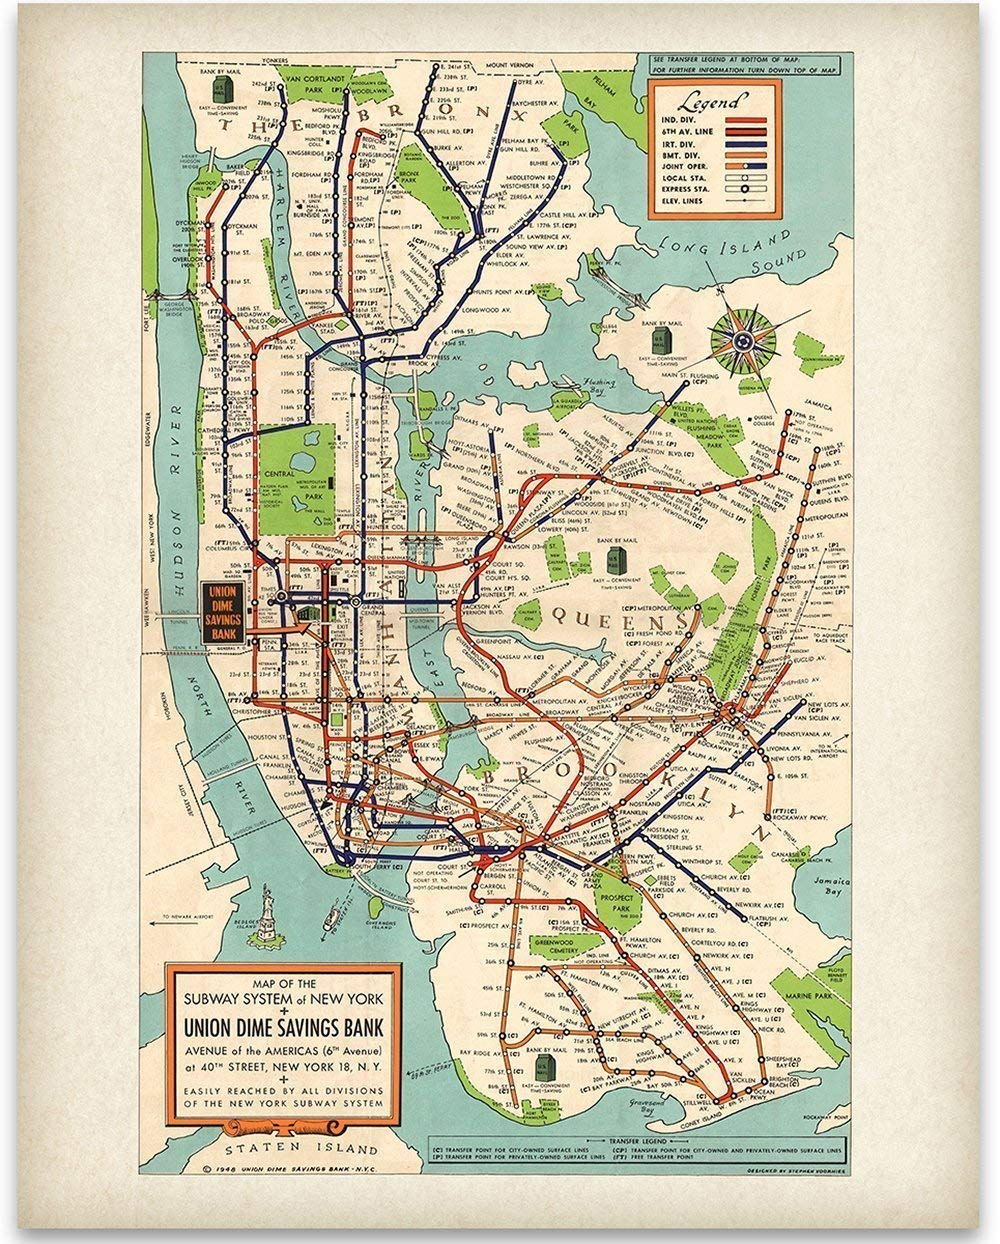 Vintage New York City Subway Map.Details About New York Subway Map 1948 11x14 Unframed Art Print Great Vintage Home Decor